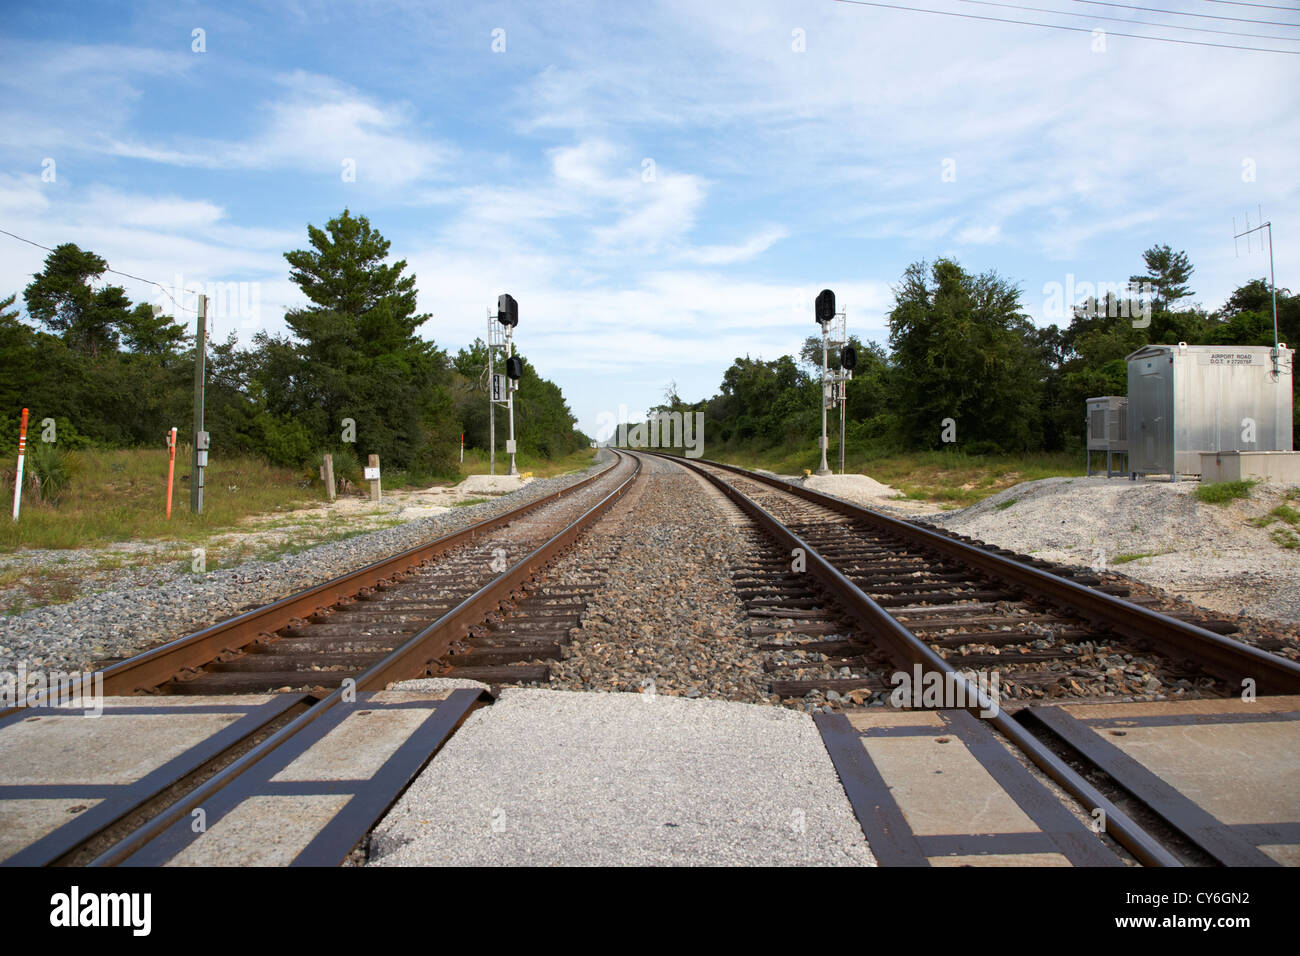 railroad crossing dual train tracks railroad florida usa - Stock Image